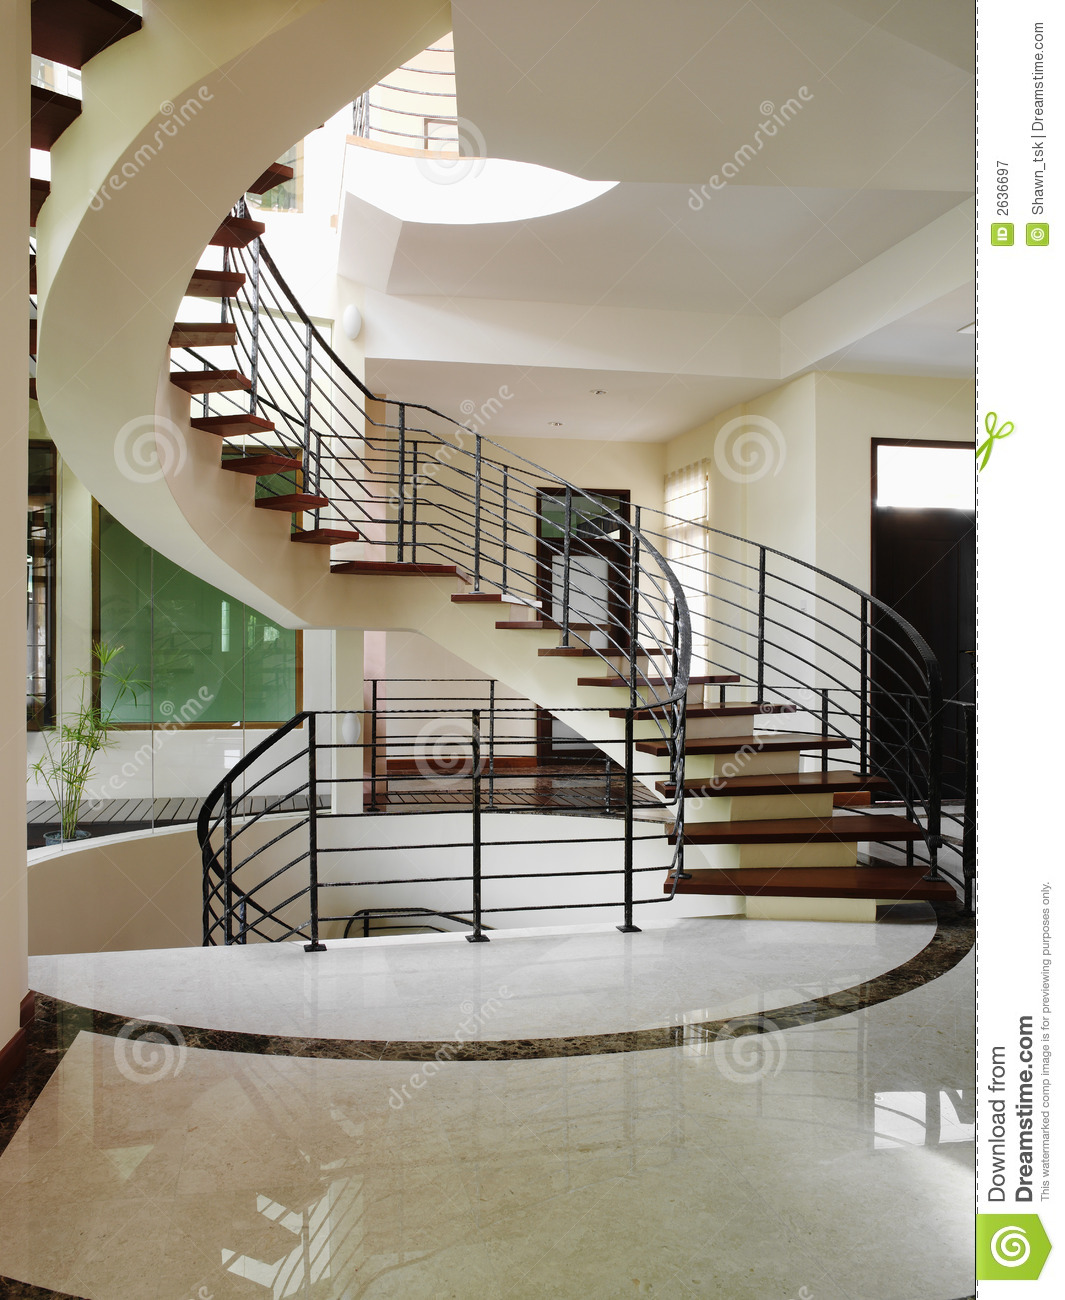 Interior design stairs stock image image of floor landscape 2636697 - Modern interior design with spiral stairs contemporary spiral staircase design ...